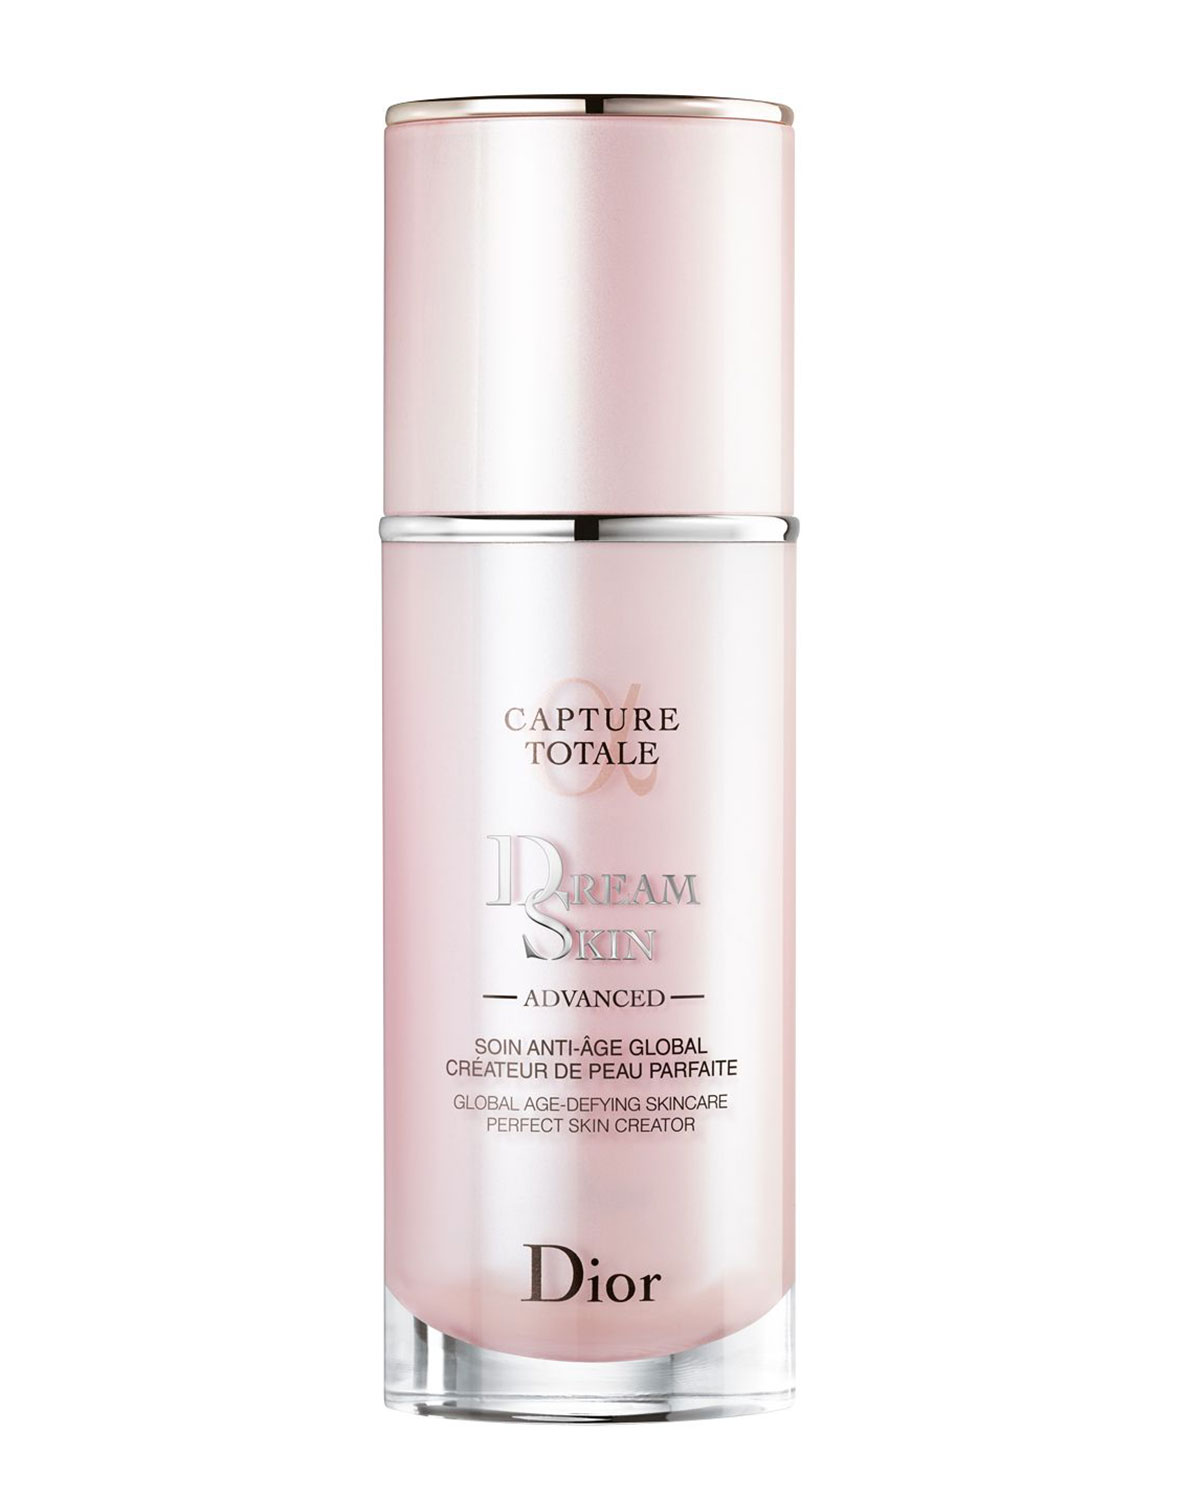 Capture Totale Dreamskin Advanced Global Age-Defying Skincare, 30ml